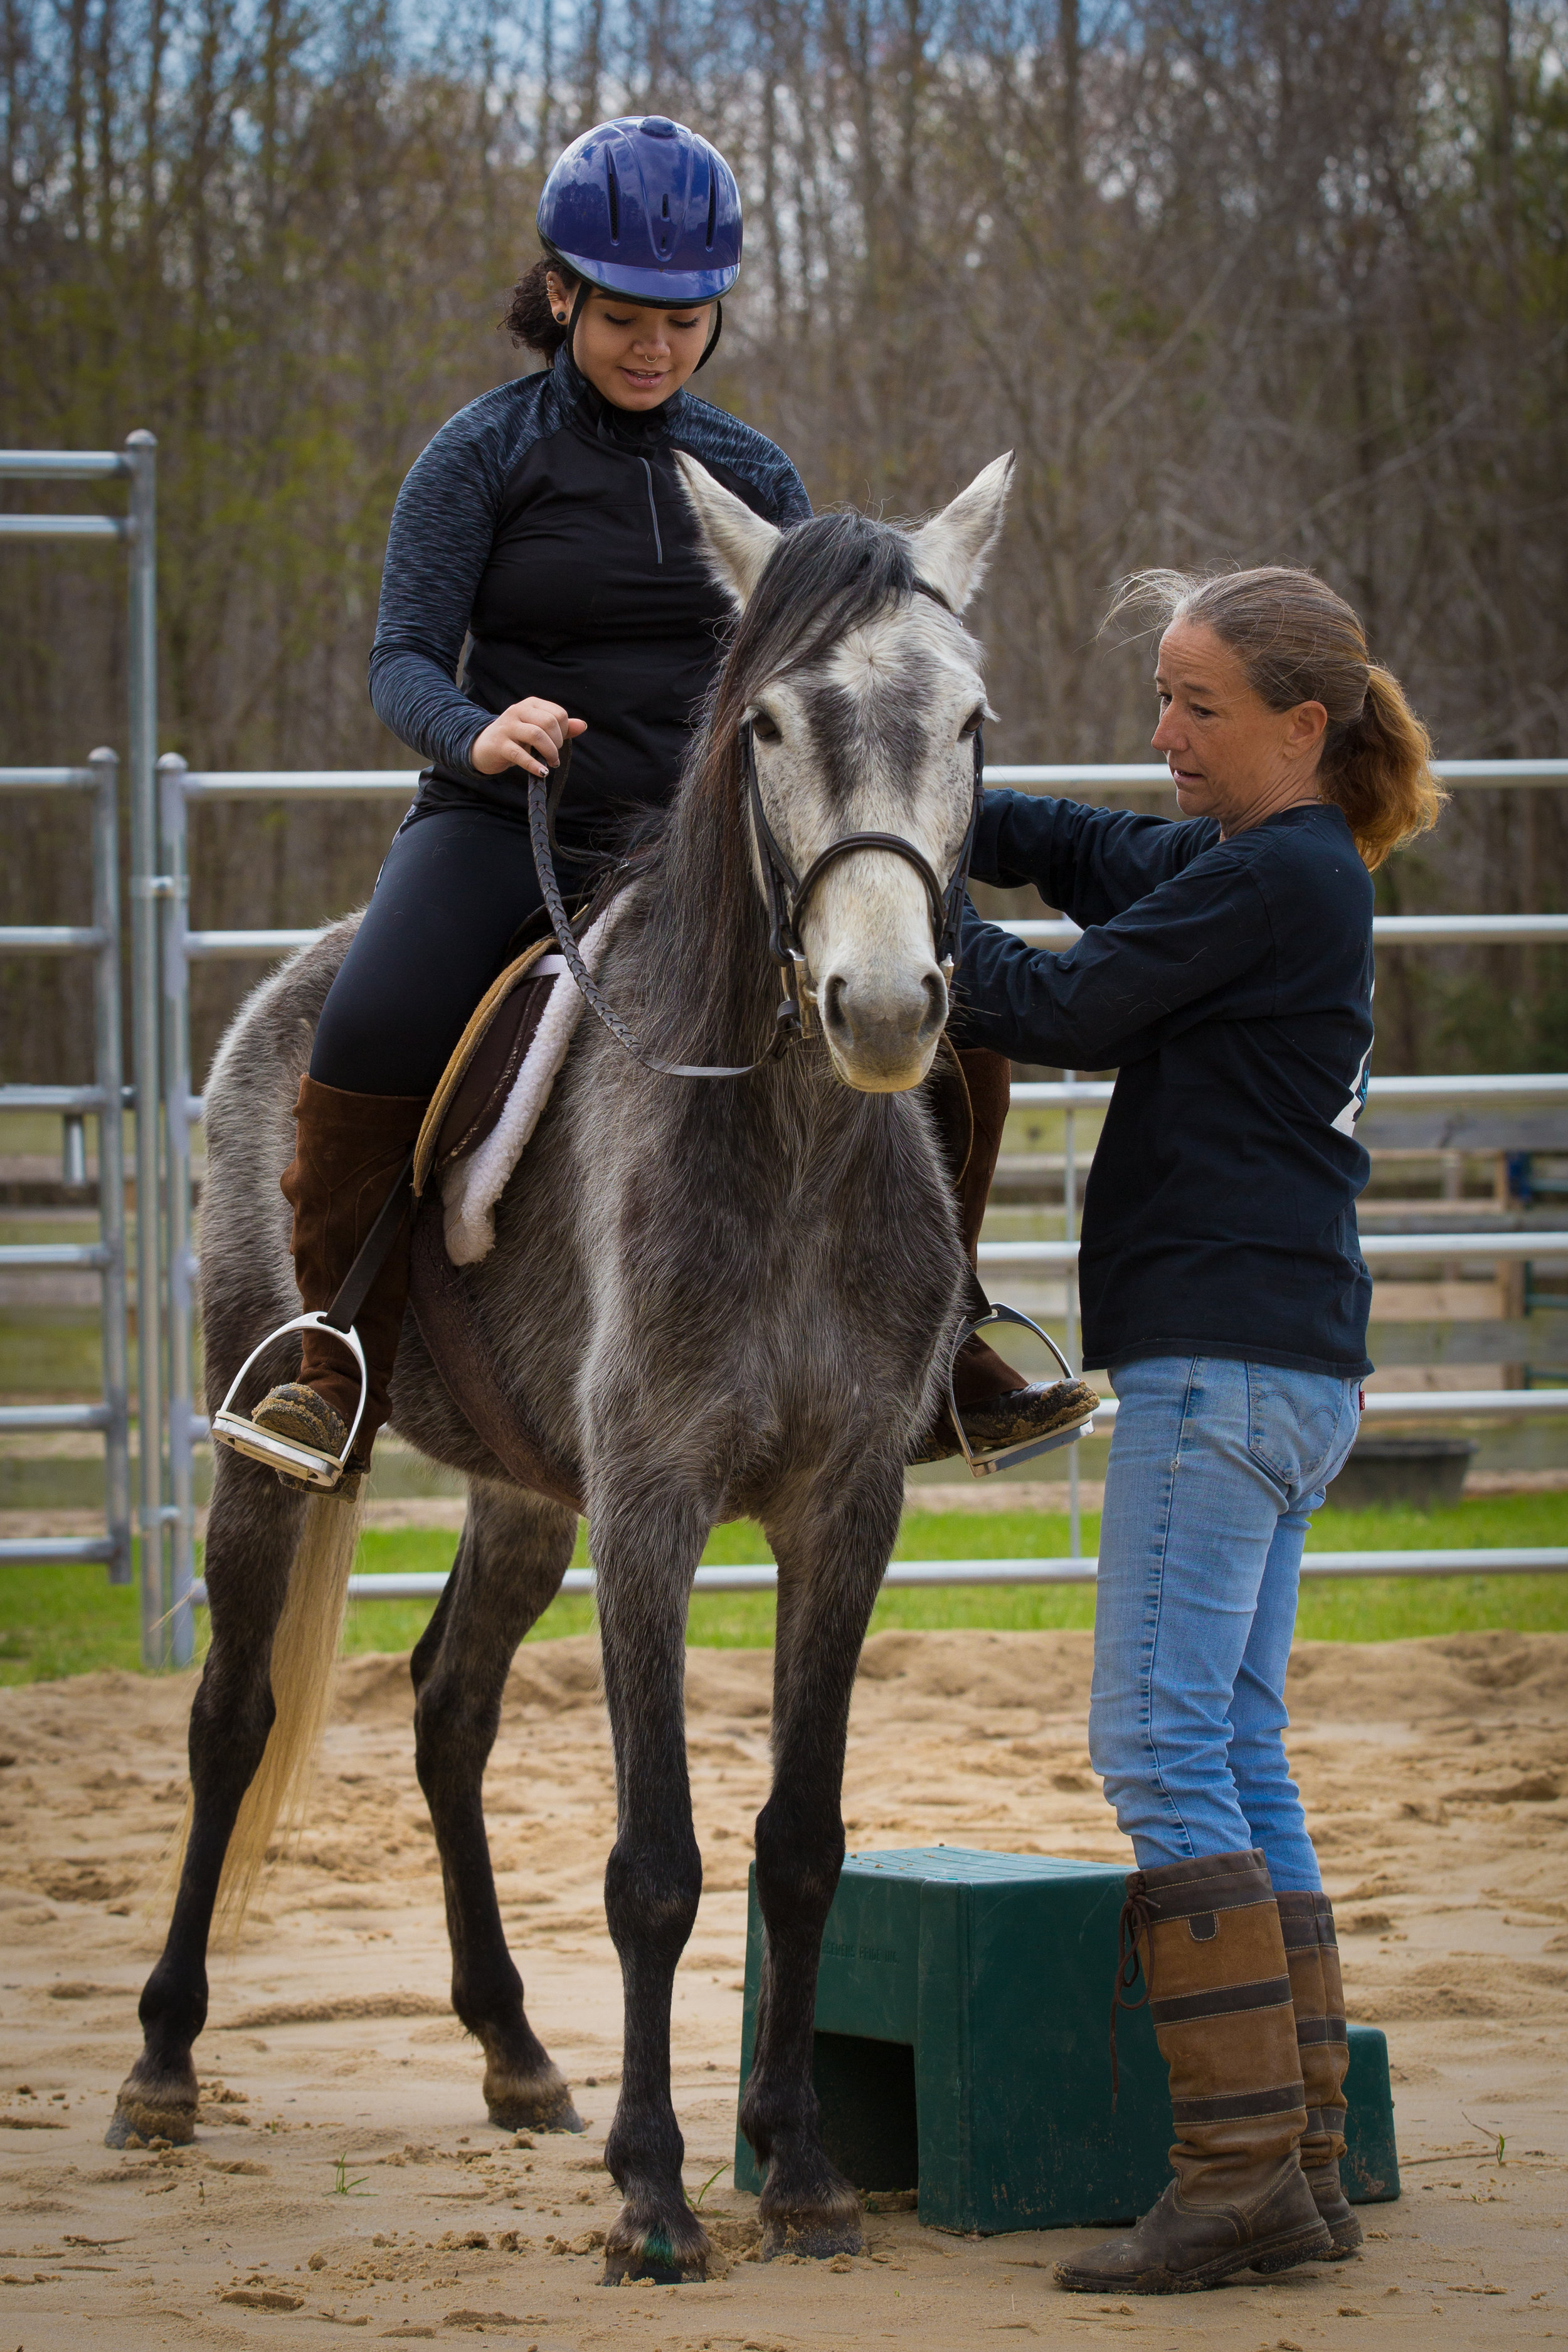 Riding is relationship and good relationships are built slowly with trust over time.